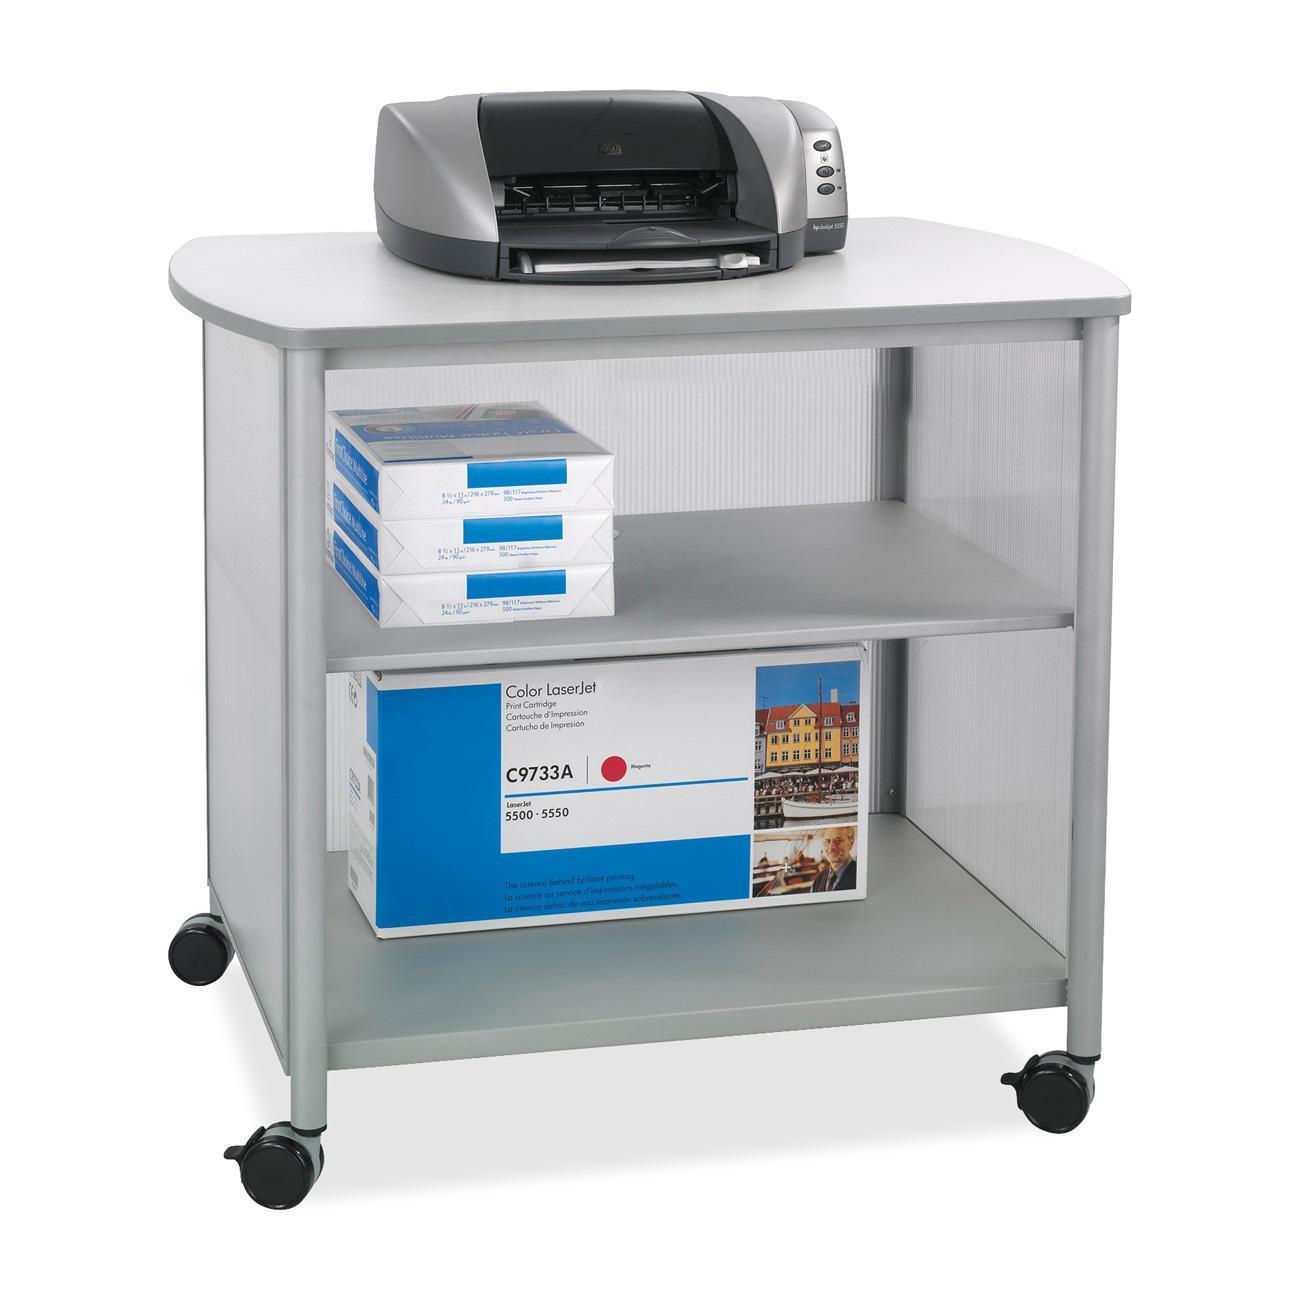 Safco, SAF1858GR, Impromptu Deluxe Machine Stand, 1 Each, Gray,Silver